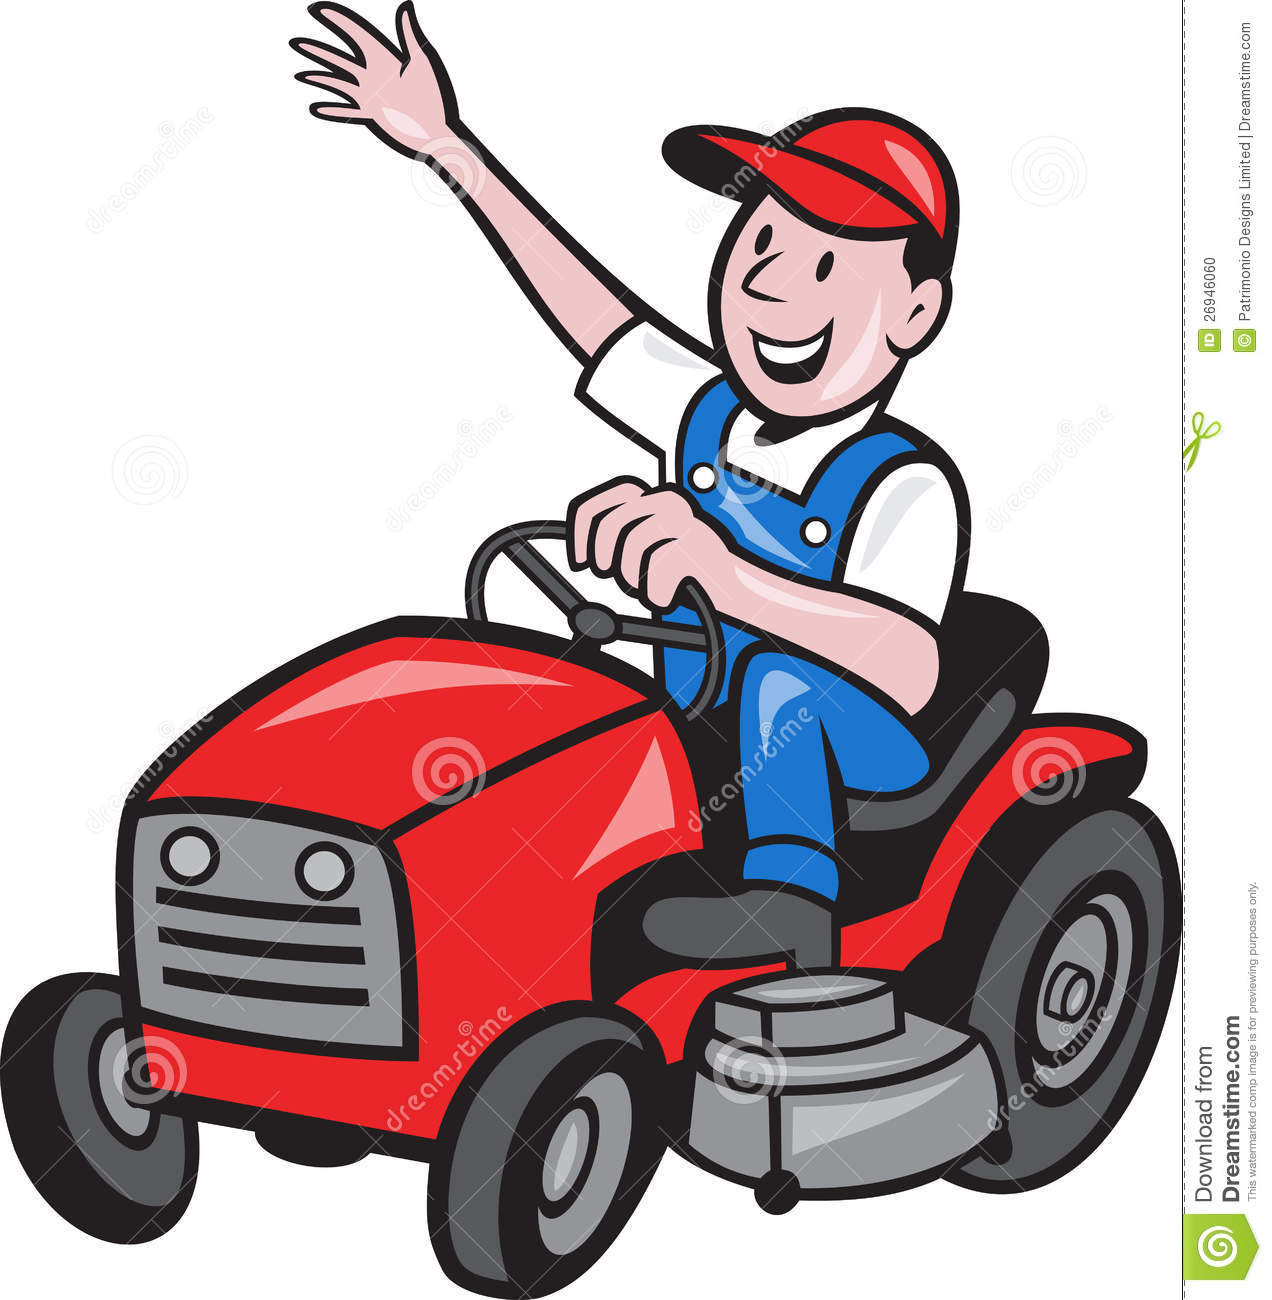 Drawing Man On Tractor : Riding lawn mower cartoon clipart kid